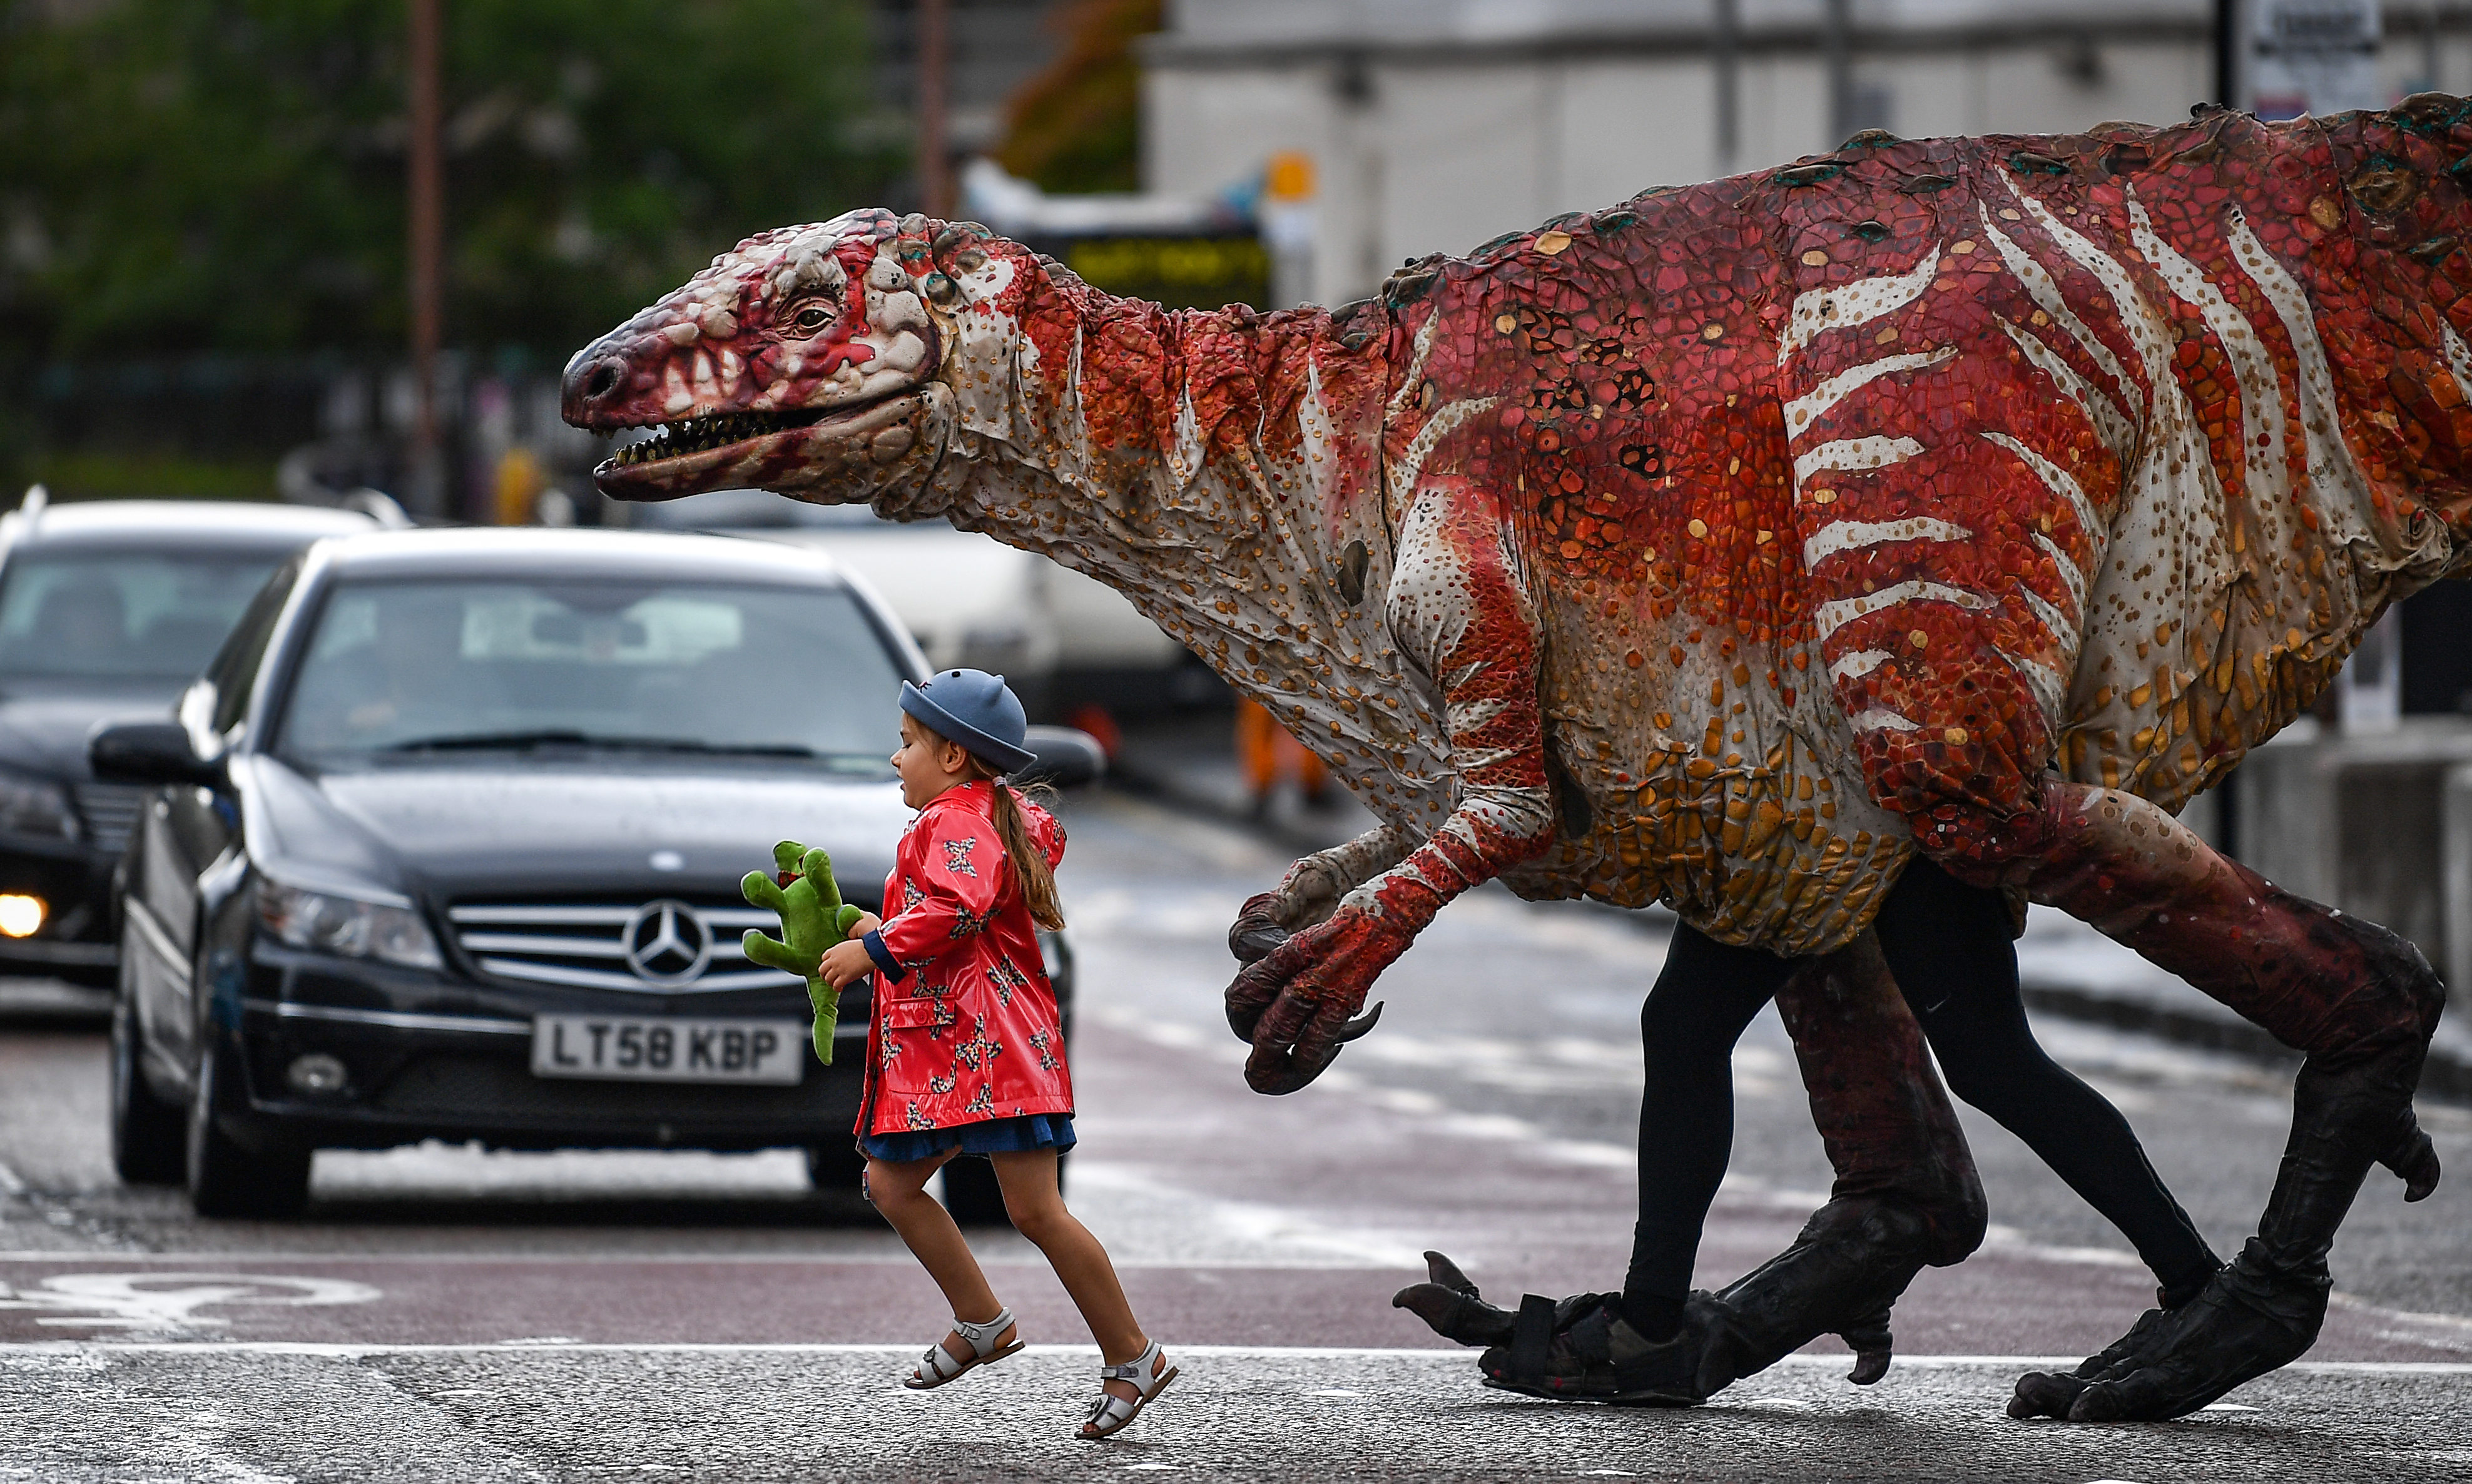 Freya Smith aged three, leads one of Erths giant dinosaur puppets across the road in Edinburgh. Australian theatre company Erth presents their best-selling show Dinosaurs Zoo as part of Underbellys Fringe programme. Featuring giant dinosaur puppets which walk, roar and blink like the real thing, Dinosaurs Zoo is a perfect example of edutainment for children of all ages, taking place at the McEwan Hall every day of the Fringe at 11am.